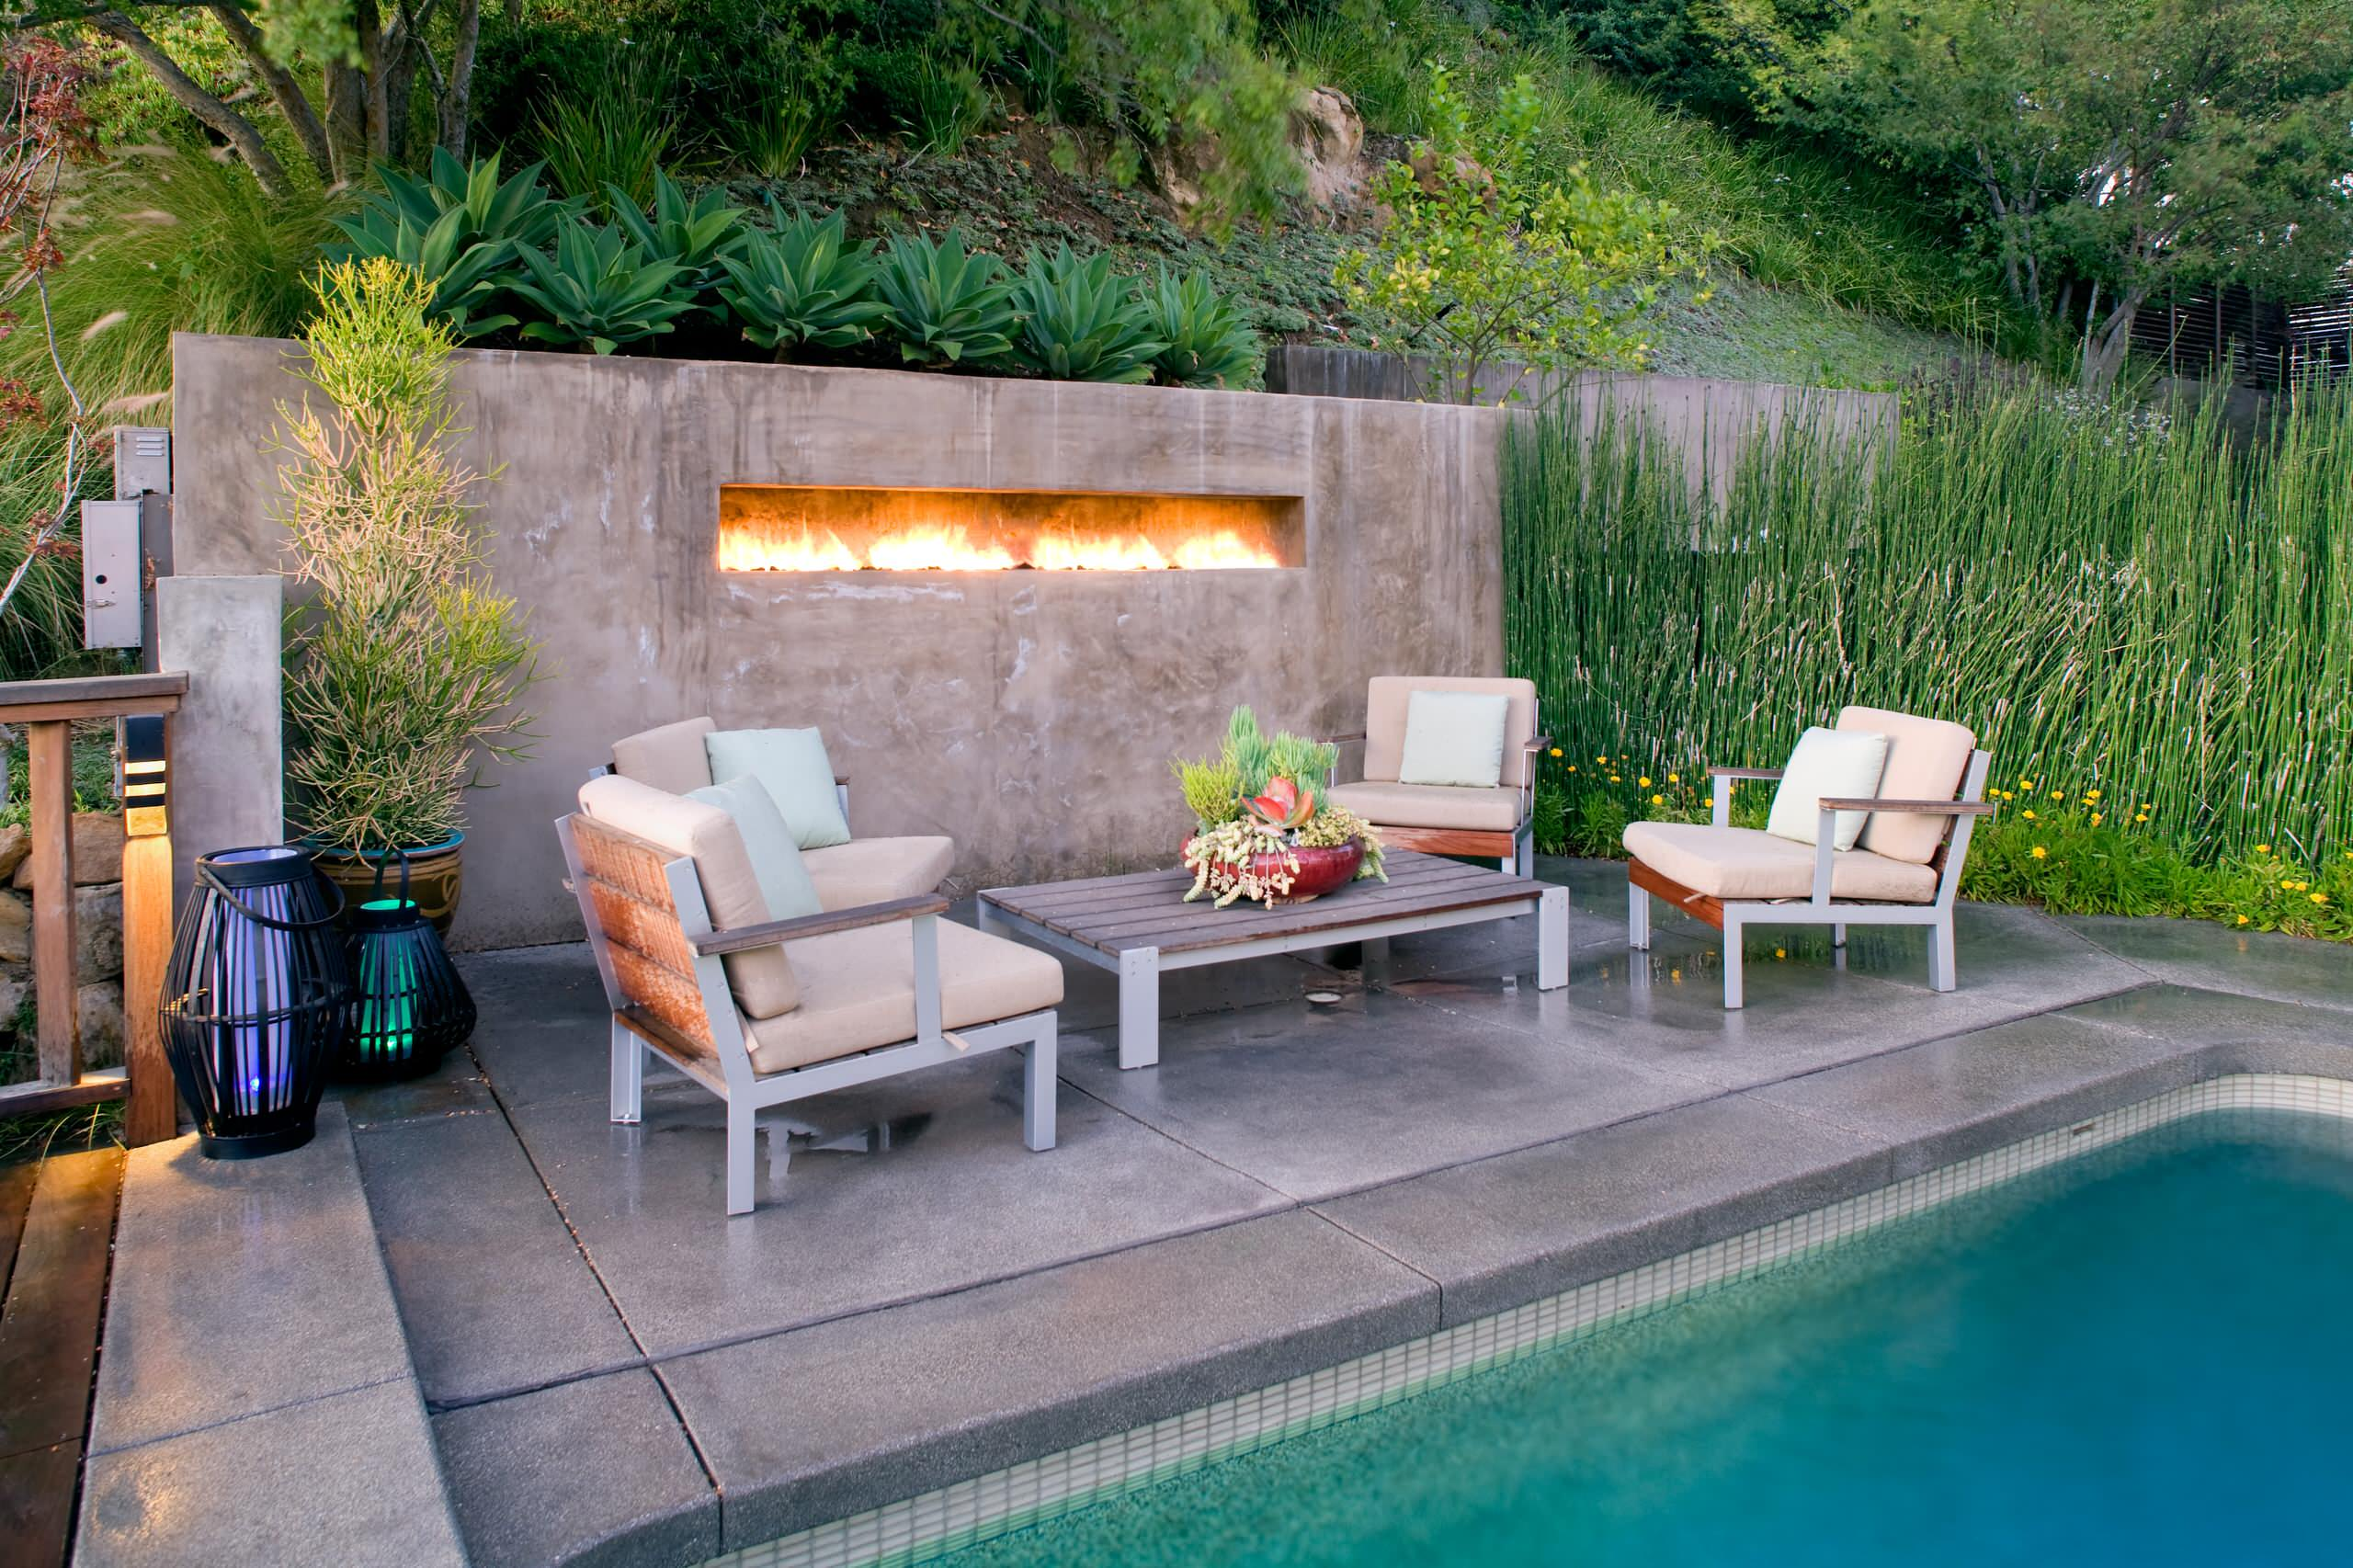 50 Best Patio Ideas For Design Inspiration for 2020 on Patio Top Ideas id=65420